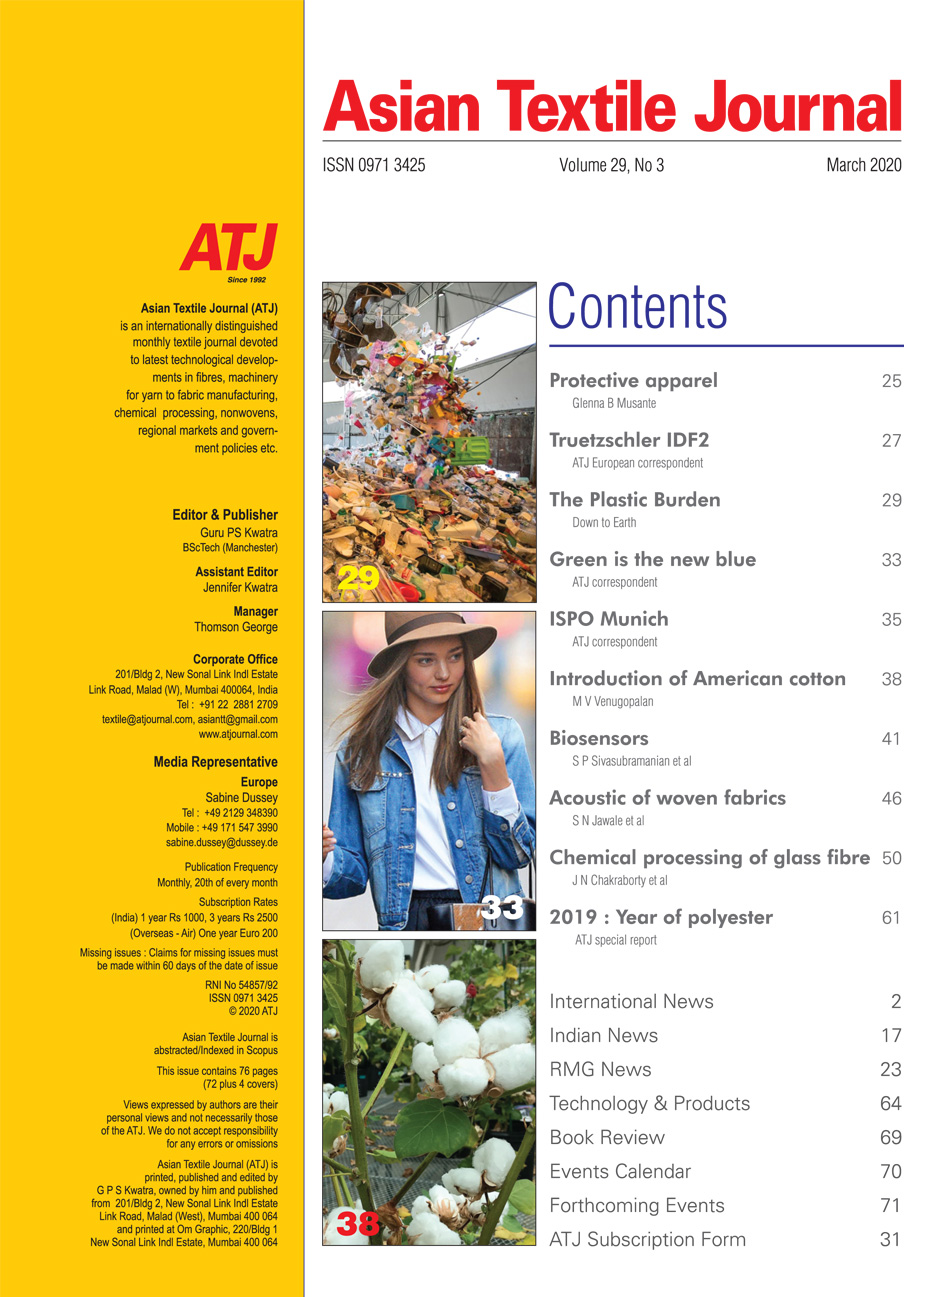 The Asian Textile Journal (ATJ)